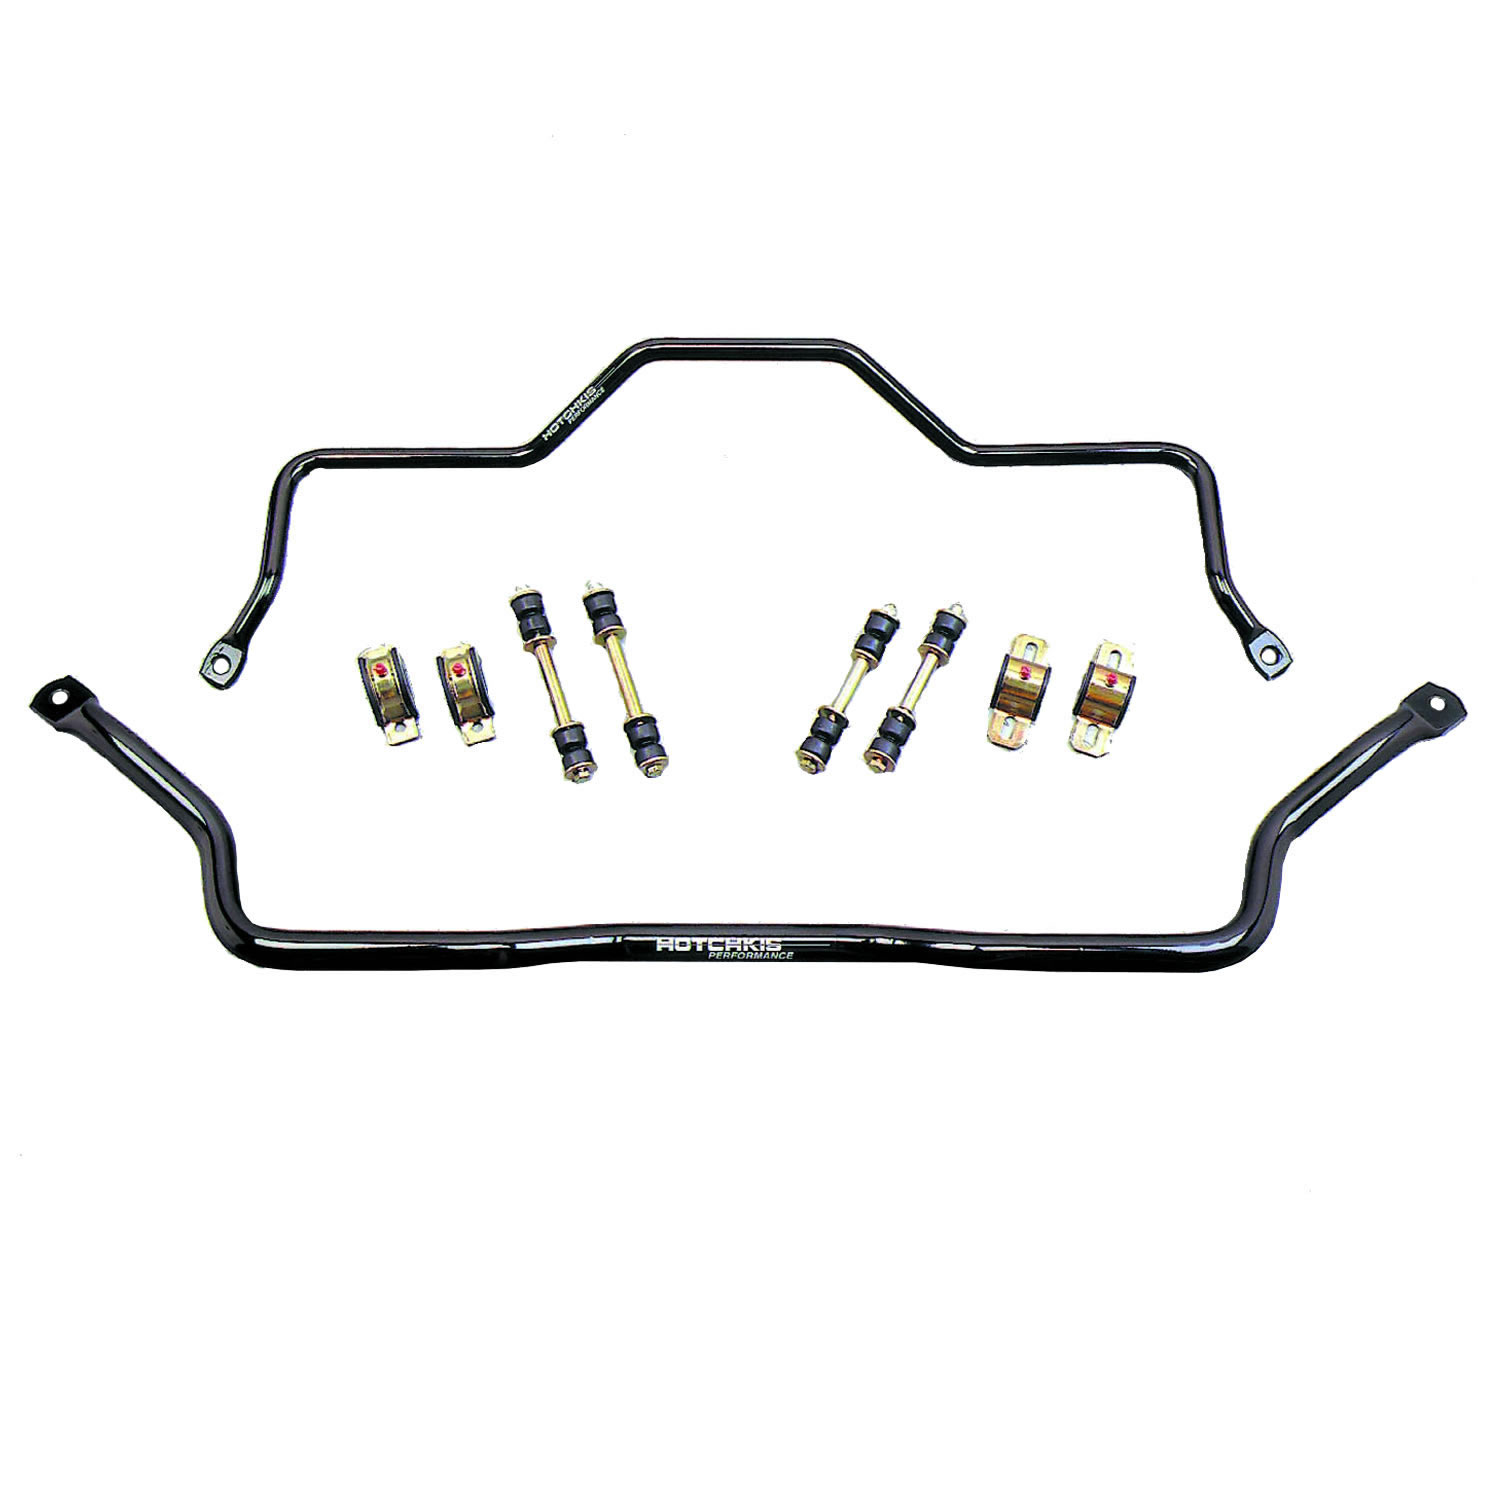 Hotchkis Sport Suspension Systems Parts And Complete